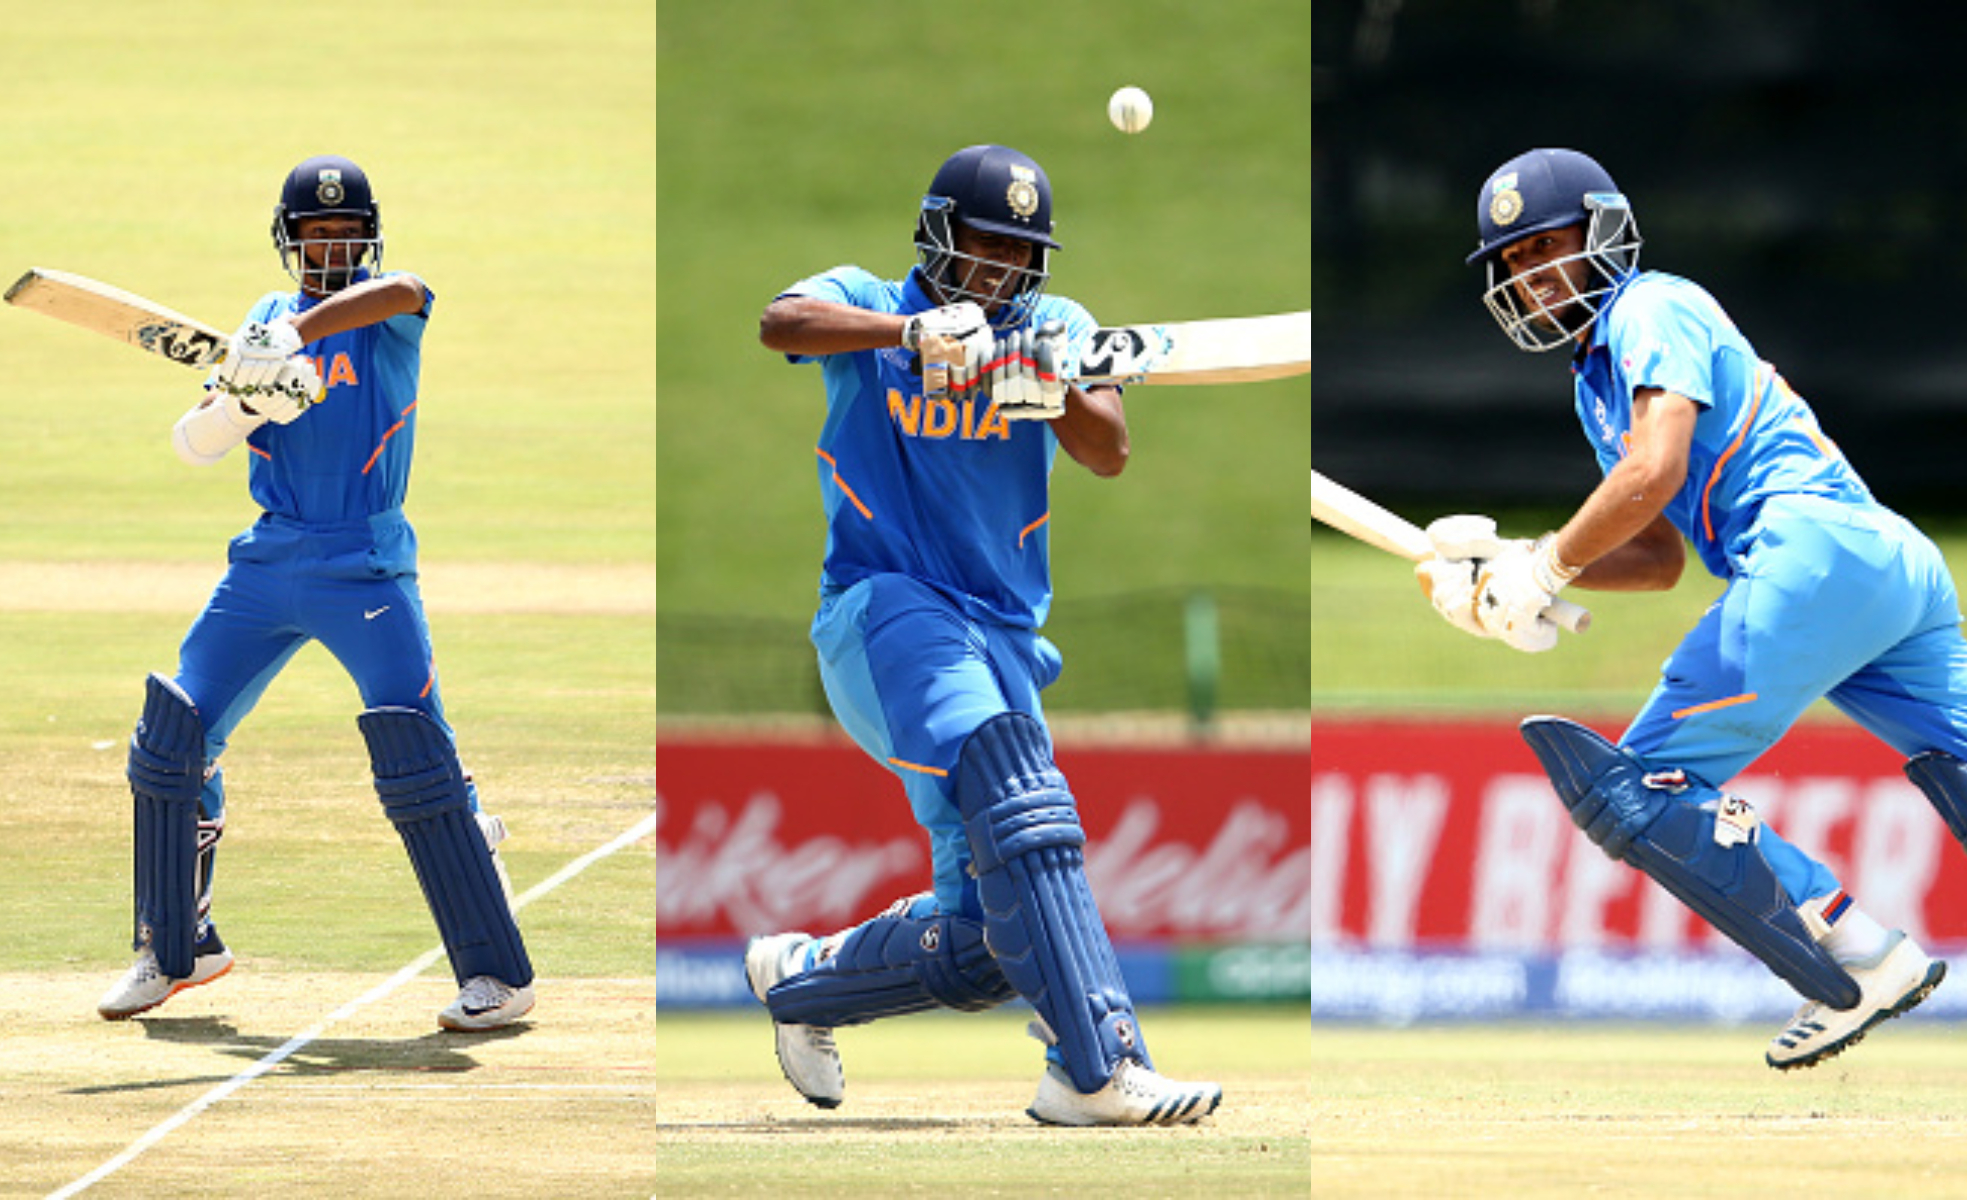 Jaiswal, Ankolekar and Bishnoi starred with the bat | Getty